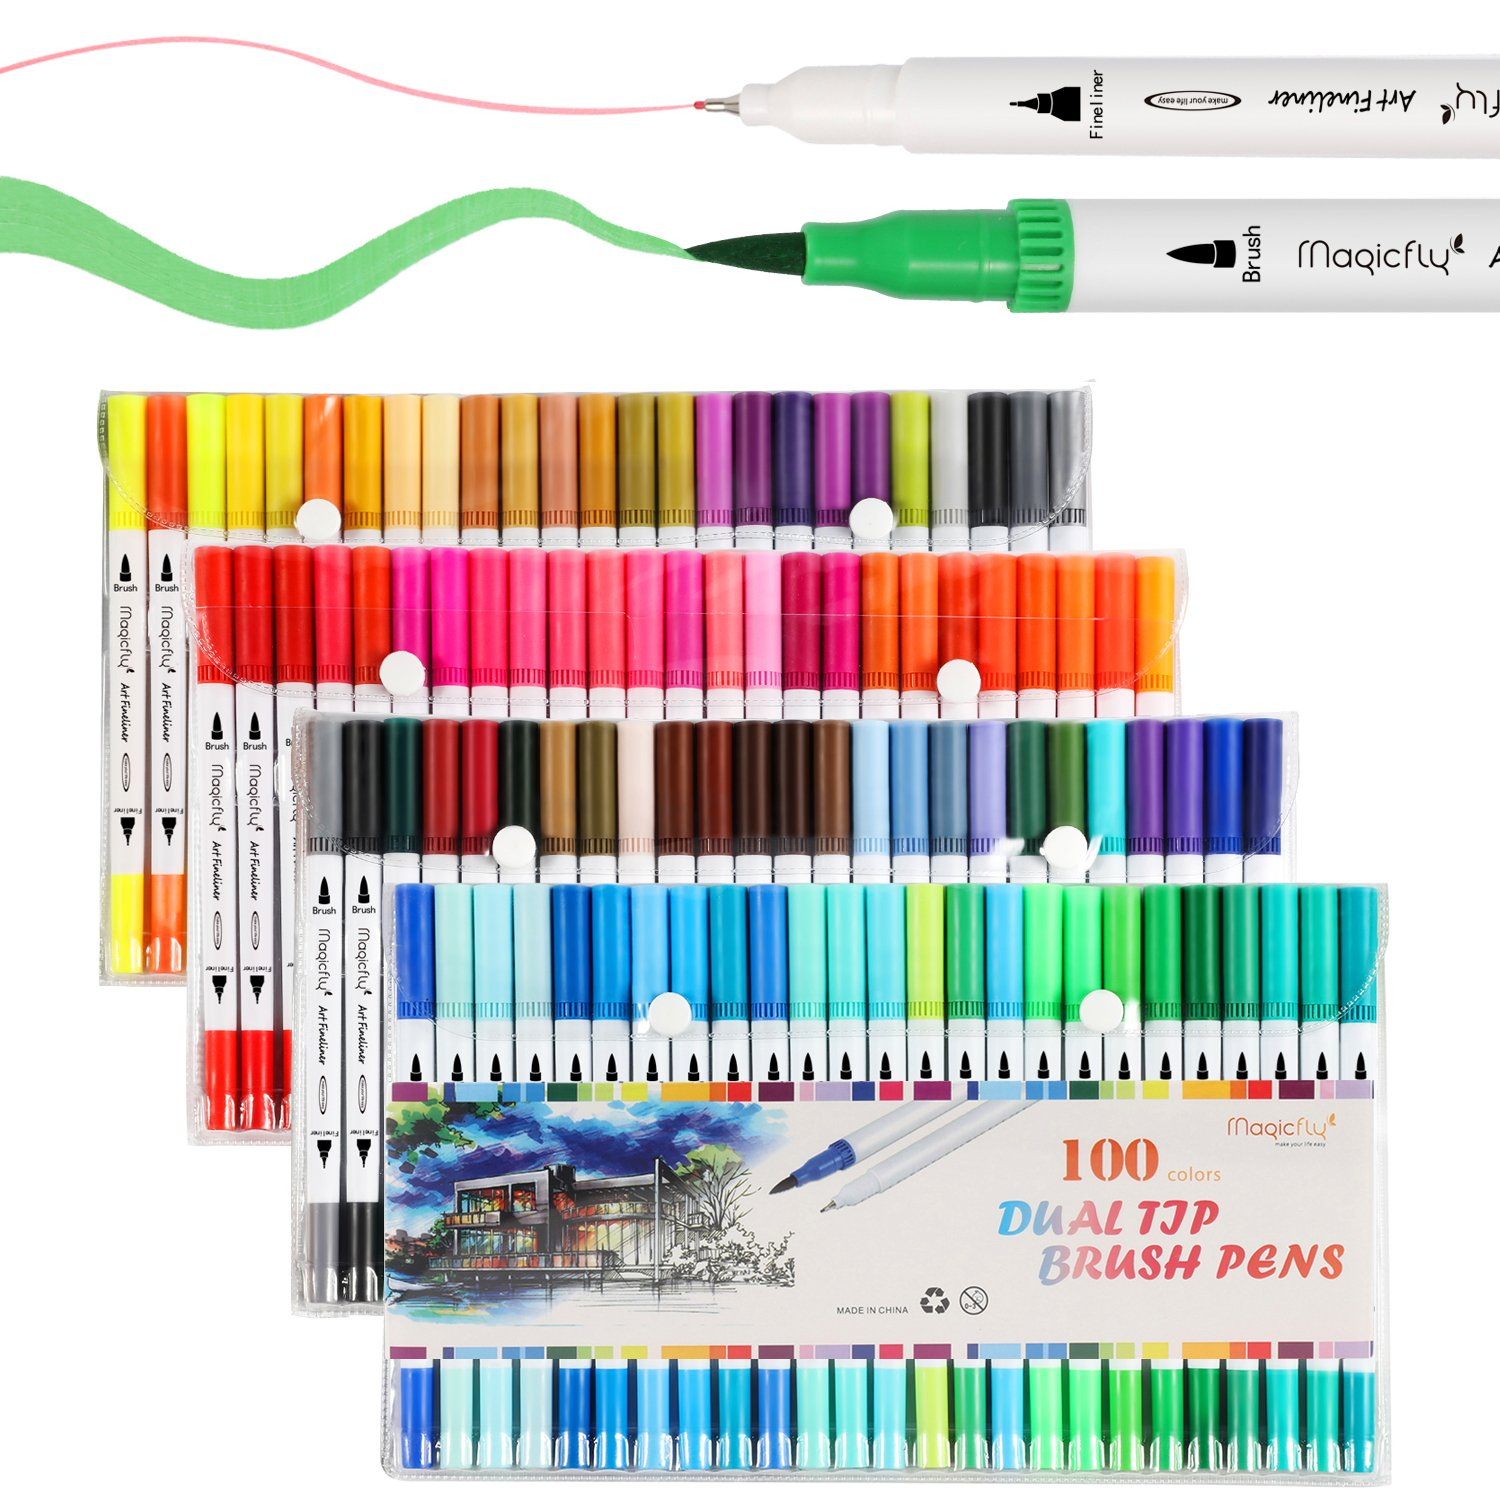 Dual Tip Marker Pens 100 Colors, Magicfly Watercolor Dual Brush Pen with Fineliner Tip 0.4 and Highlighters Brush Tip(1mm-2mm) for Coloring, Art, Sketching, Calligraphy, Manga, Bullet Journal 4336948069